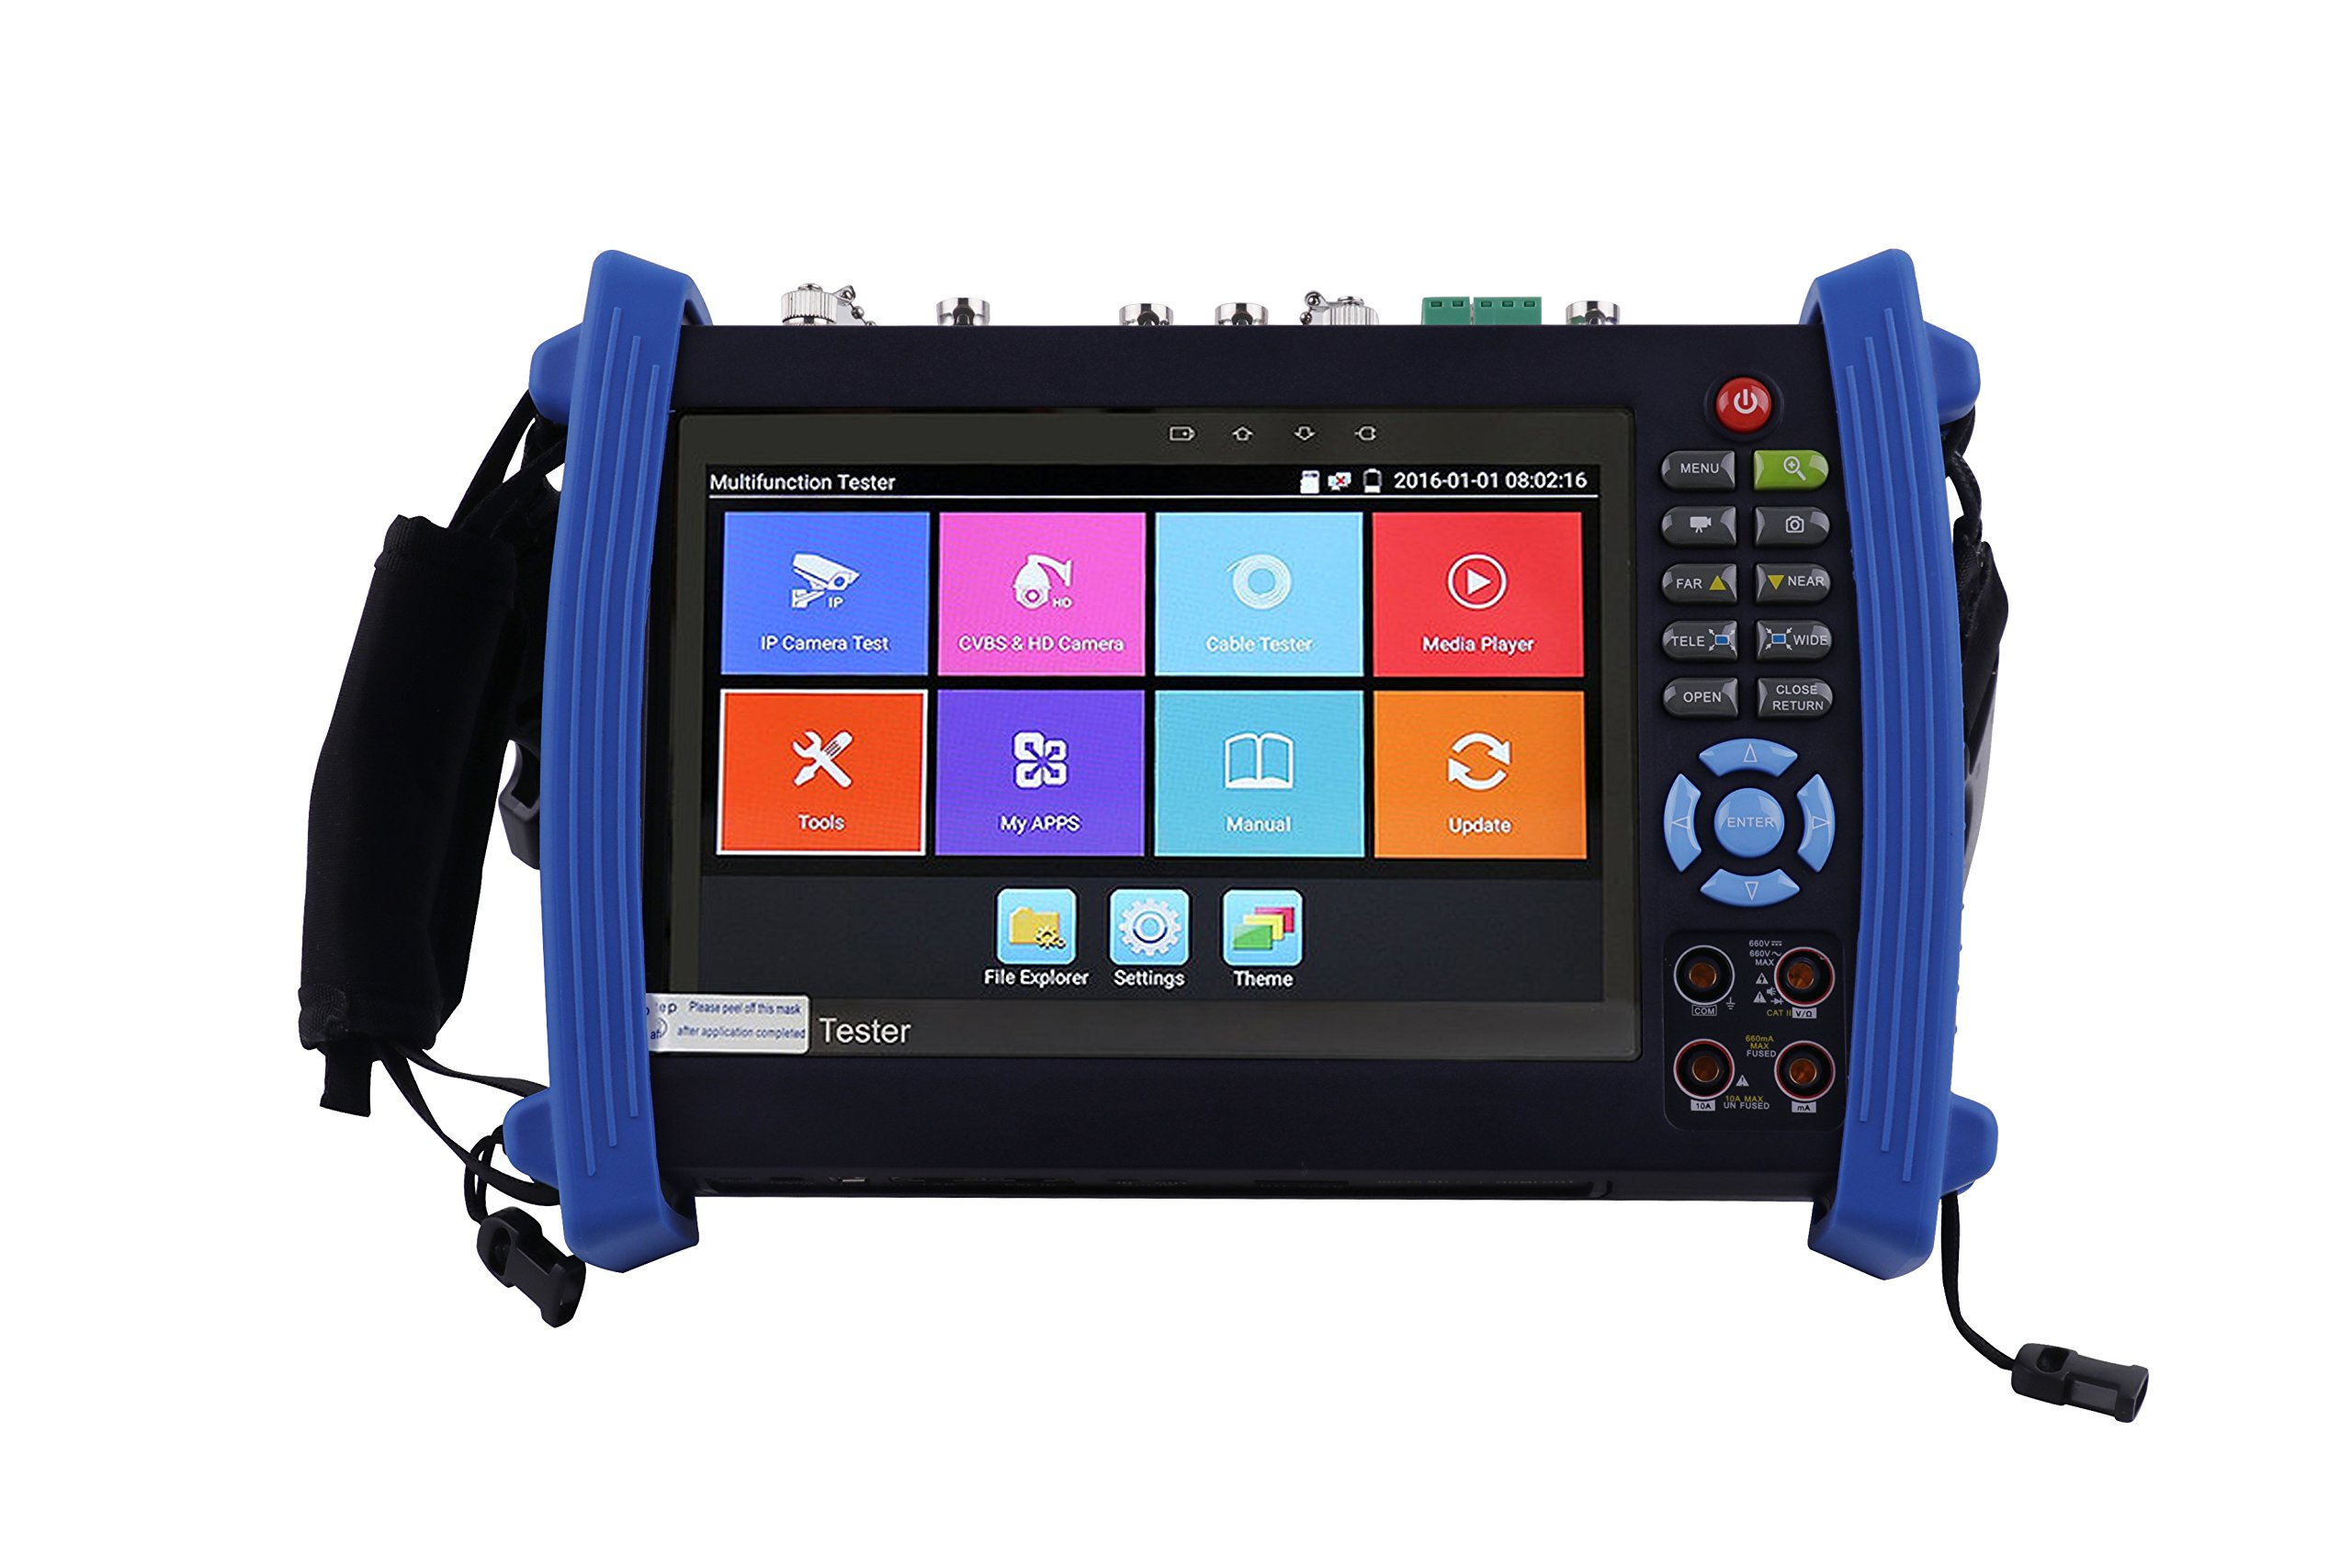 CCTVMTST 7inch Retina Display Touch Screen CCTV IP Camera Onvif Analog Tester With HD-TVI/CVI/AHD/SDI/PTZ/POE/WIFI/4K H.265 & 264/HDMI In & Out/RJ45 TDR/DMM/Optical Power Meter/VFL(8600MOVTADHS-Plus) by CCTVMTST